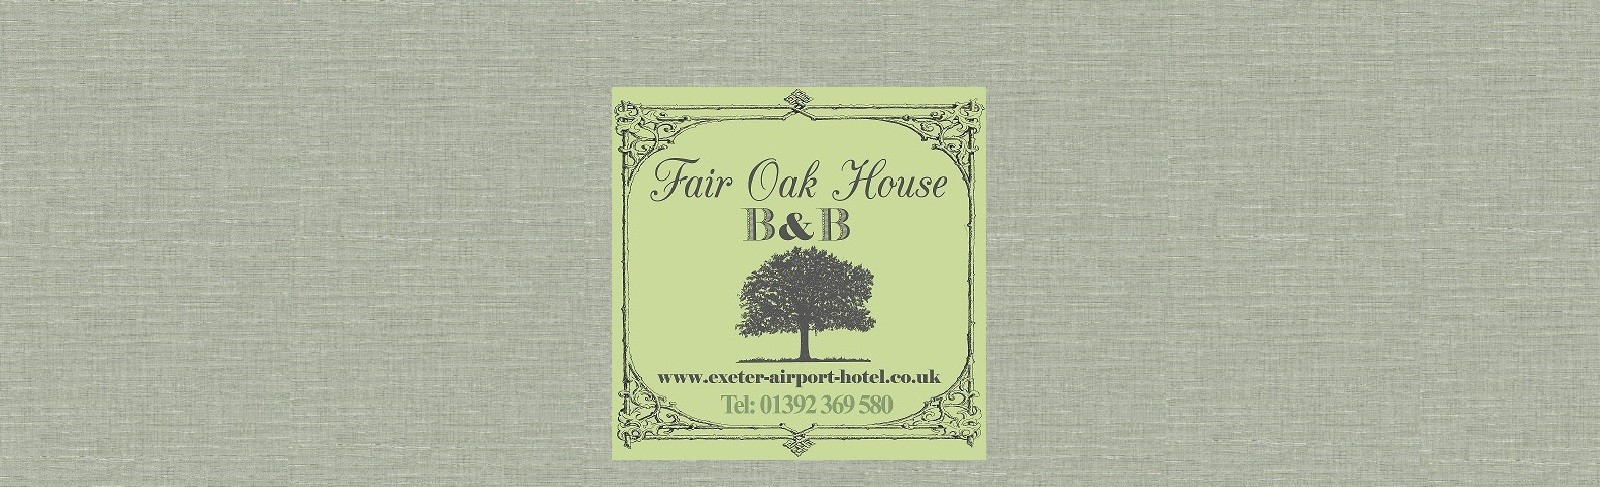 Fair Oak House B & B. Exeter Airport Hotel and Parking. Tel: 01392 369 580